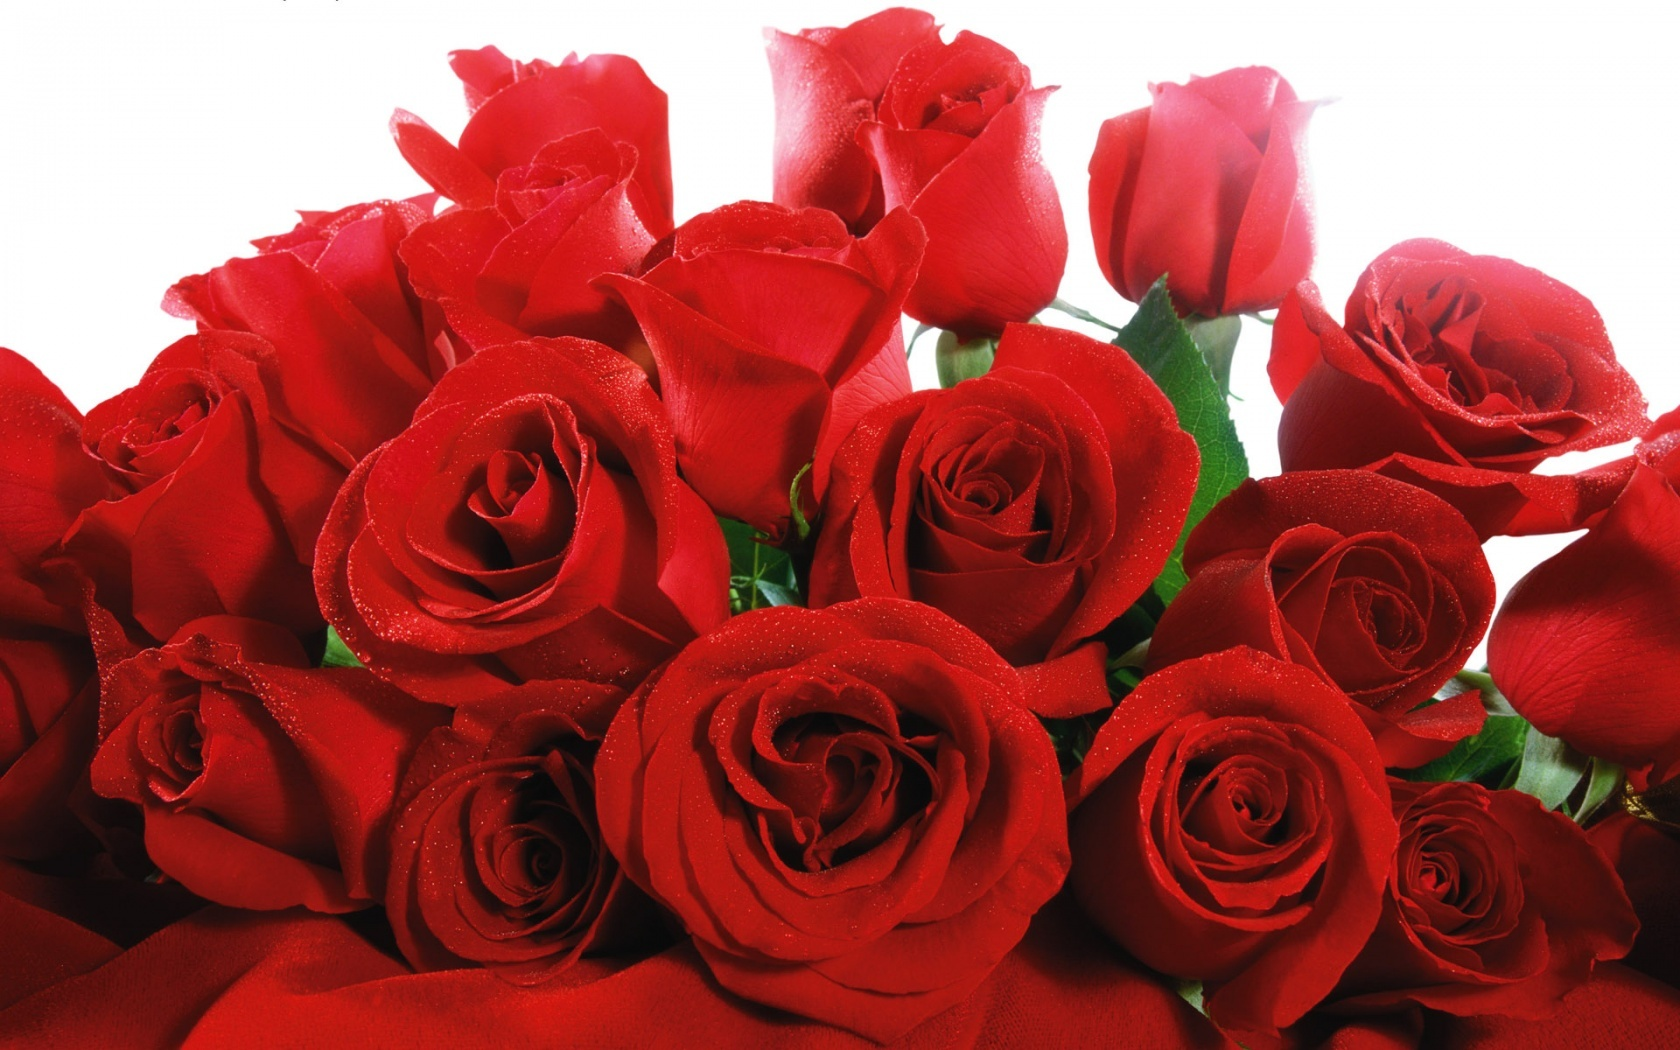 wallpaper rose wallpapers for free download about 3 095 wallpapers